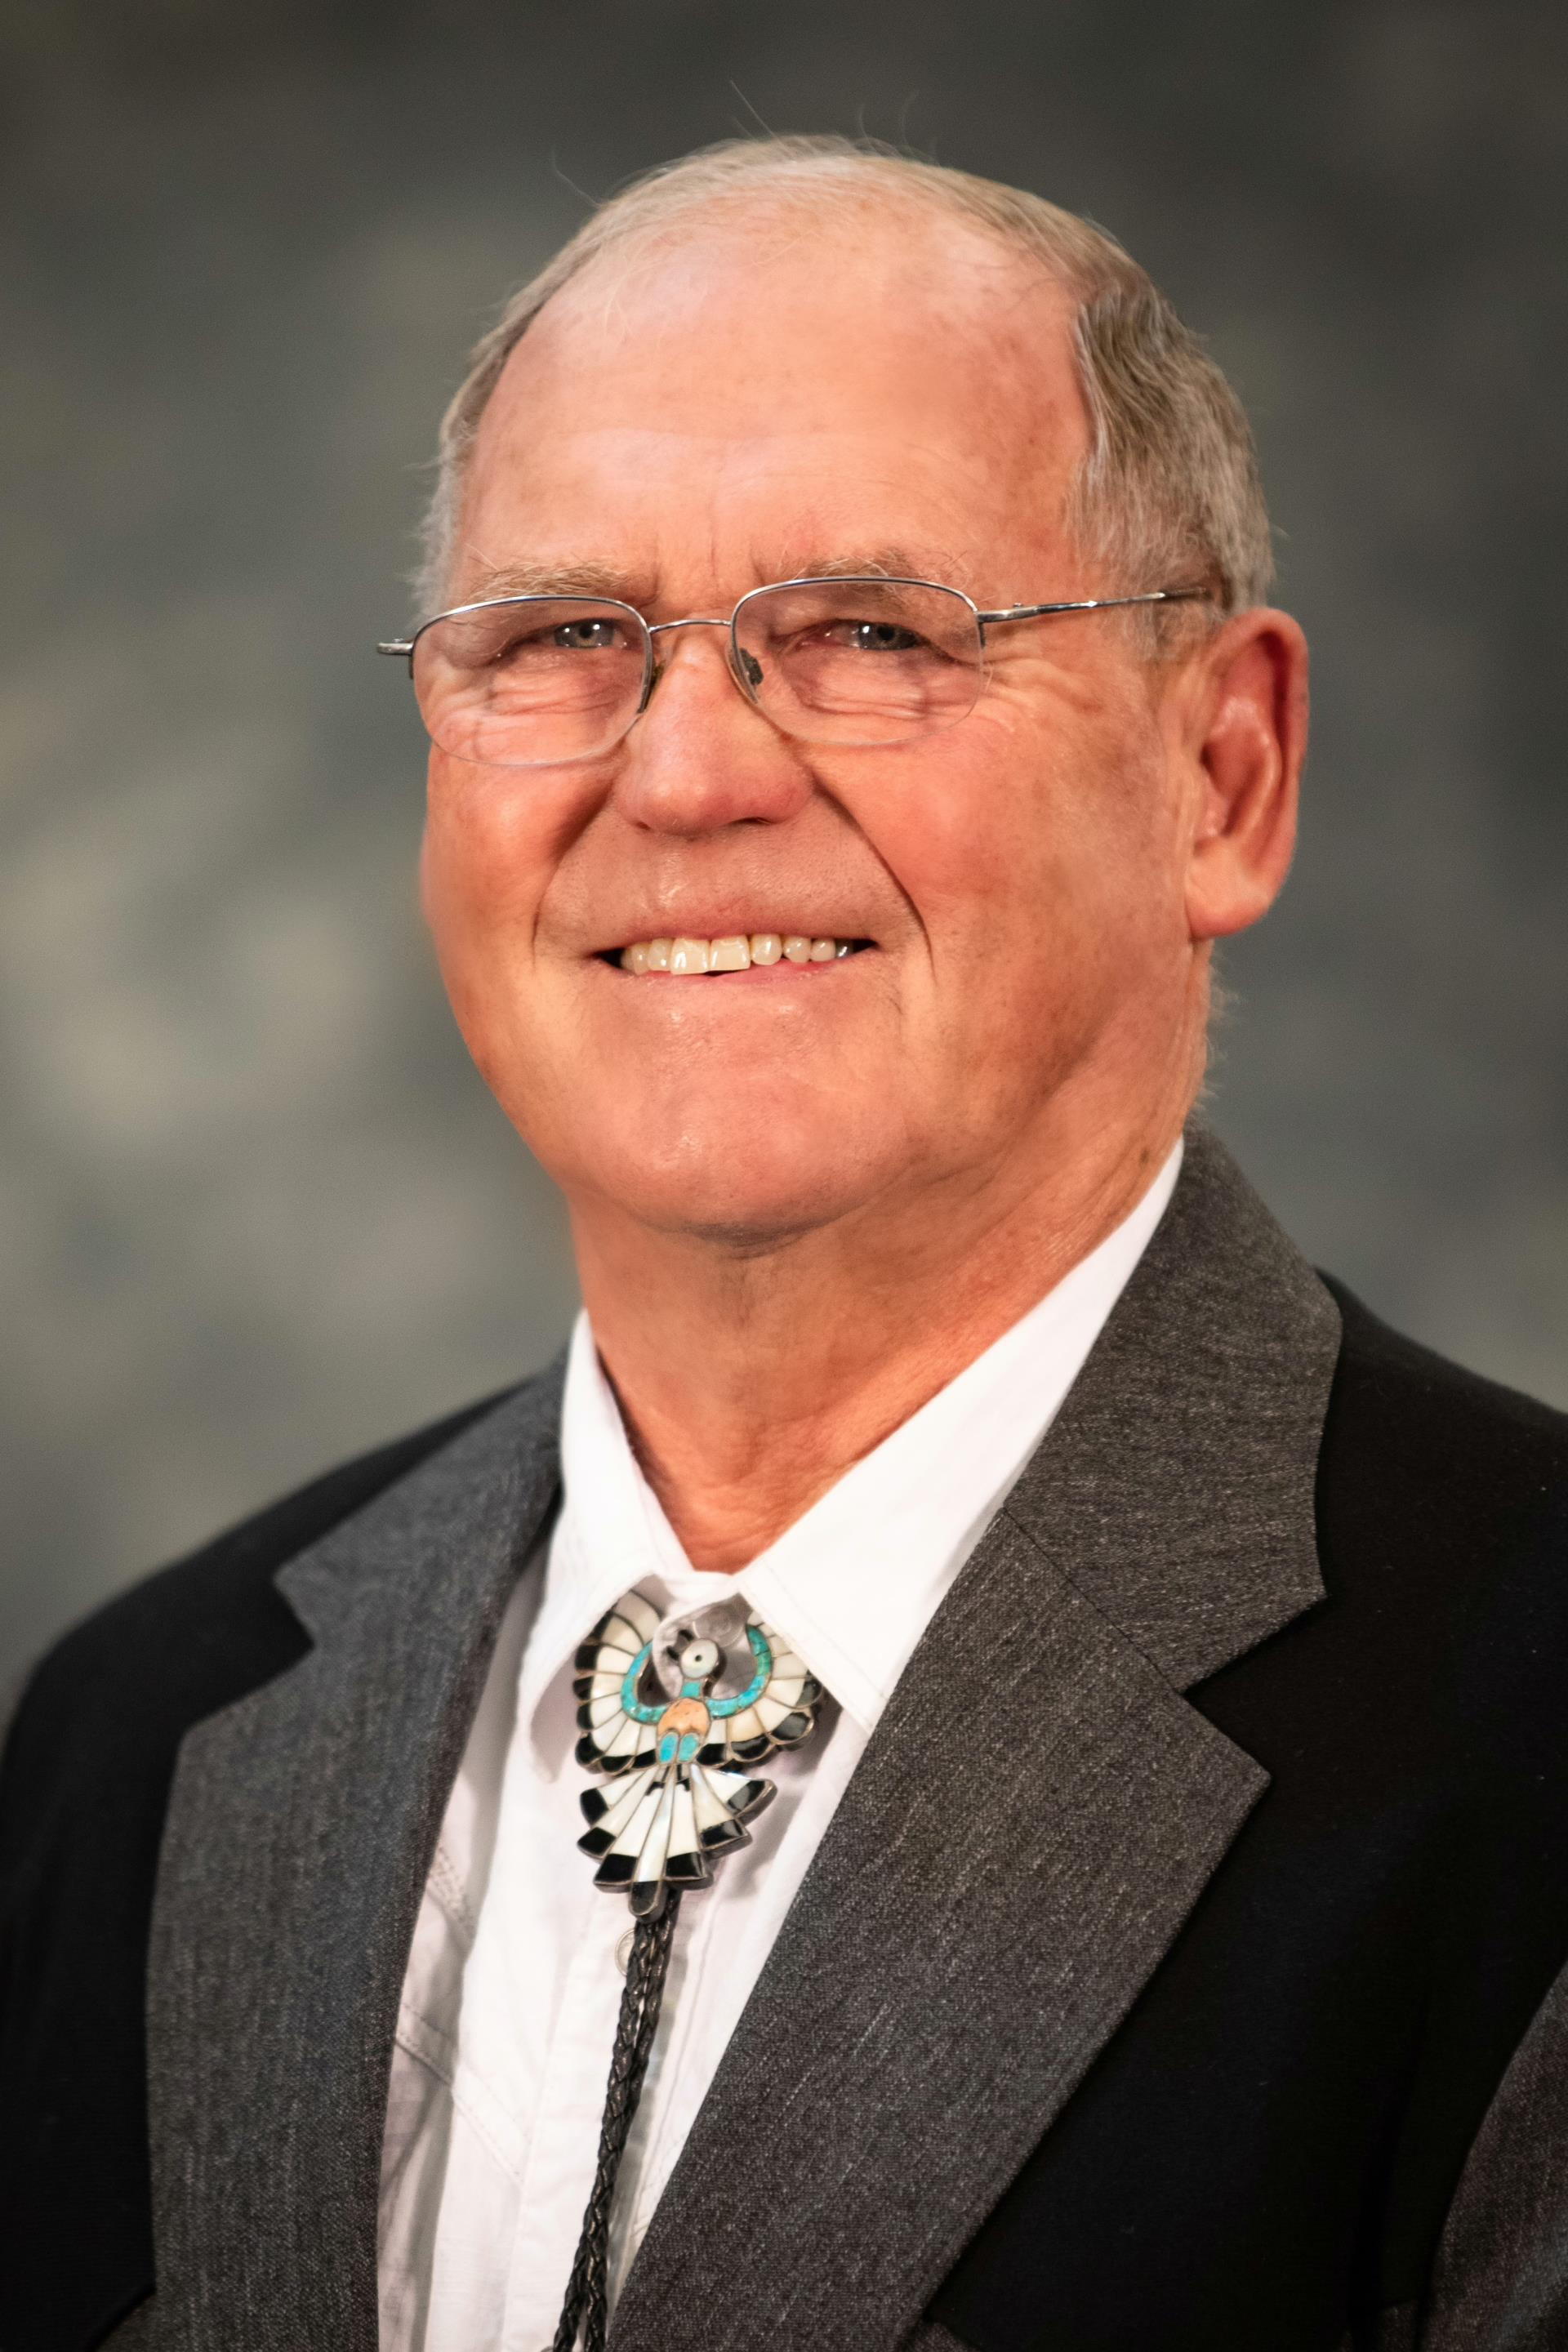 Ward III Council Member Steve Olson